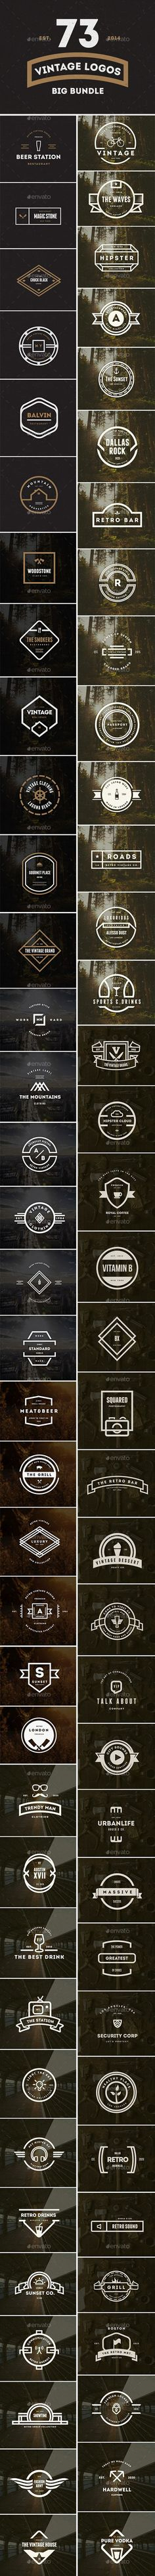 73 Vintage Labels & Badges Logos Bundle Template PSD | Buy and Download: http://graphicriver.net/item/73-vintage-labels-badges-logos-bundle/9624640?WT.oss_phrase=&WT.oss_rank=7&WT.z_author=designdistrictmx&WT.ac=search_thumb&ref=ksioks: